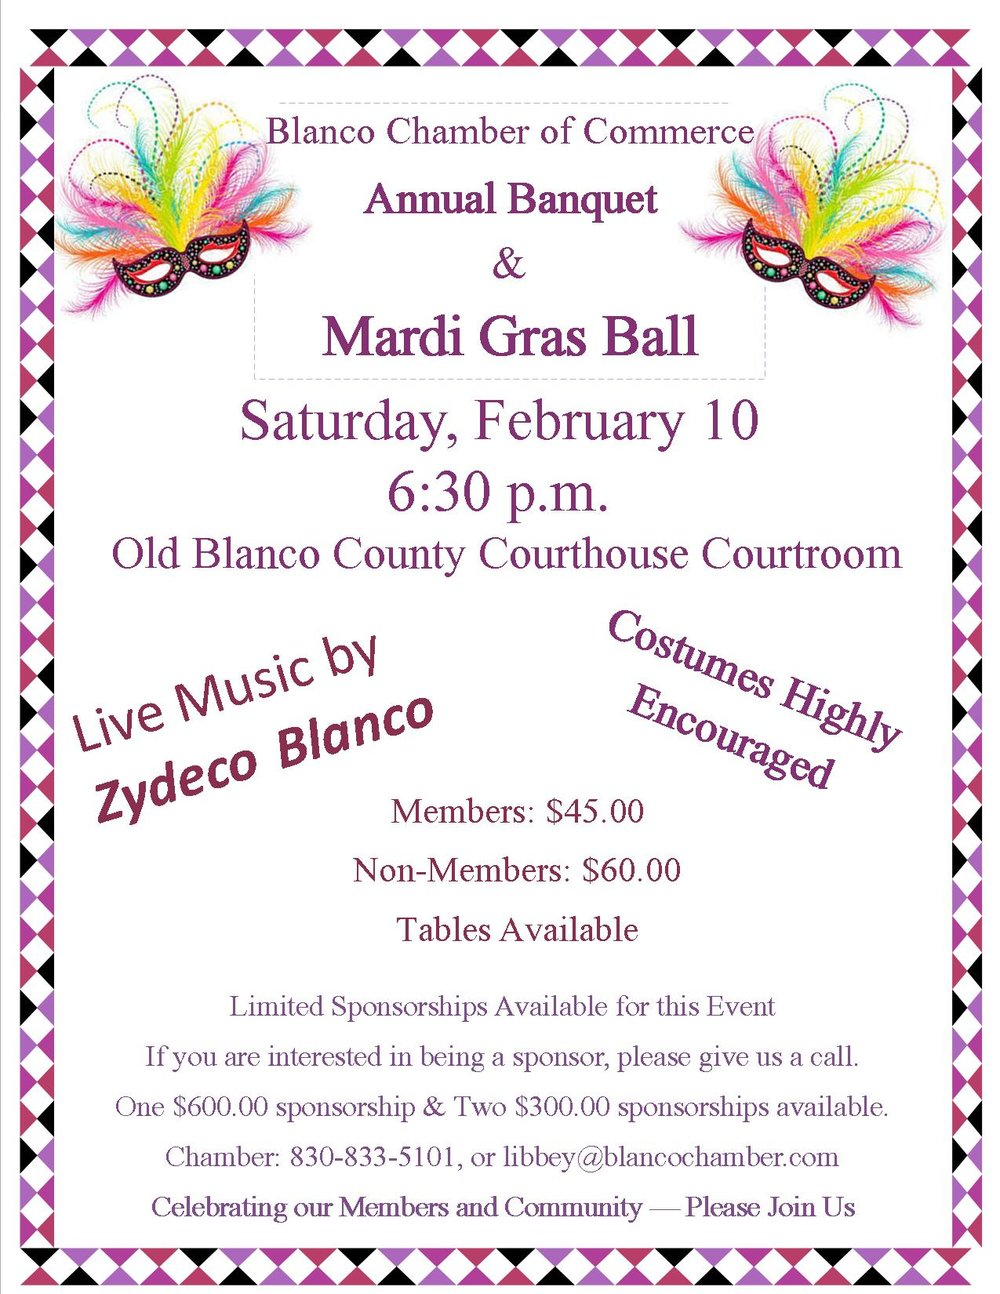 Please come by the Chamber office to purchase your tickets no later than February 5.